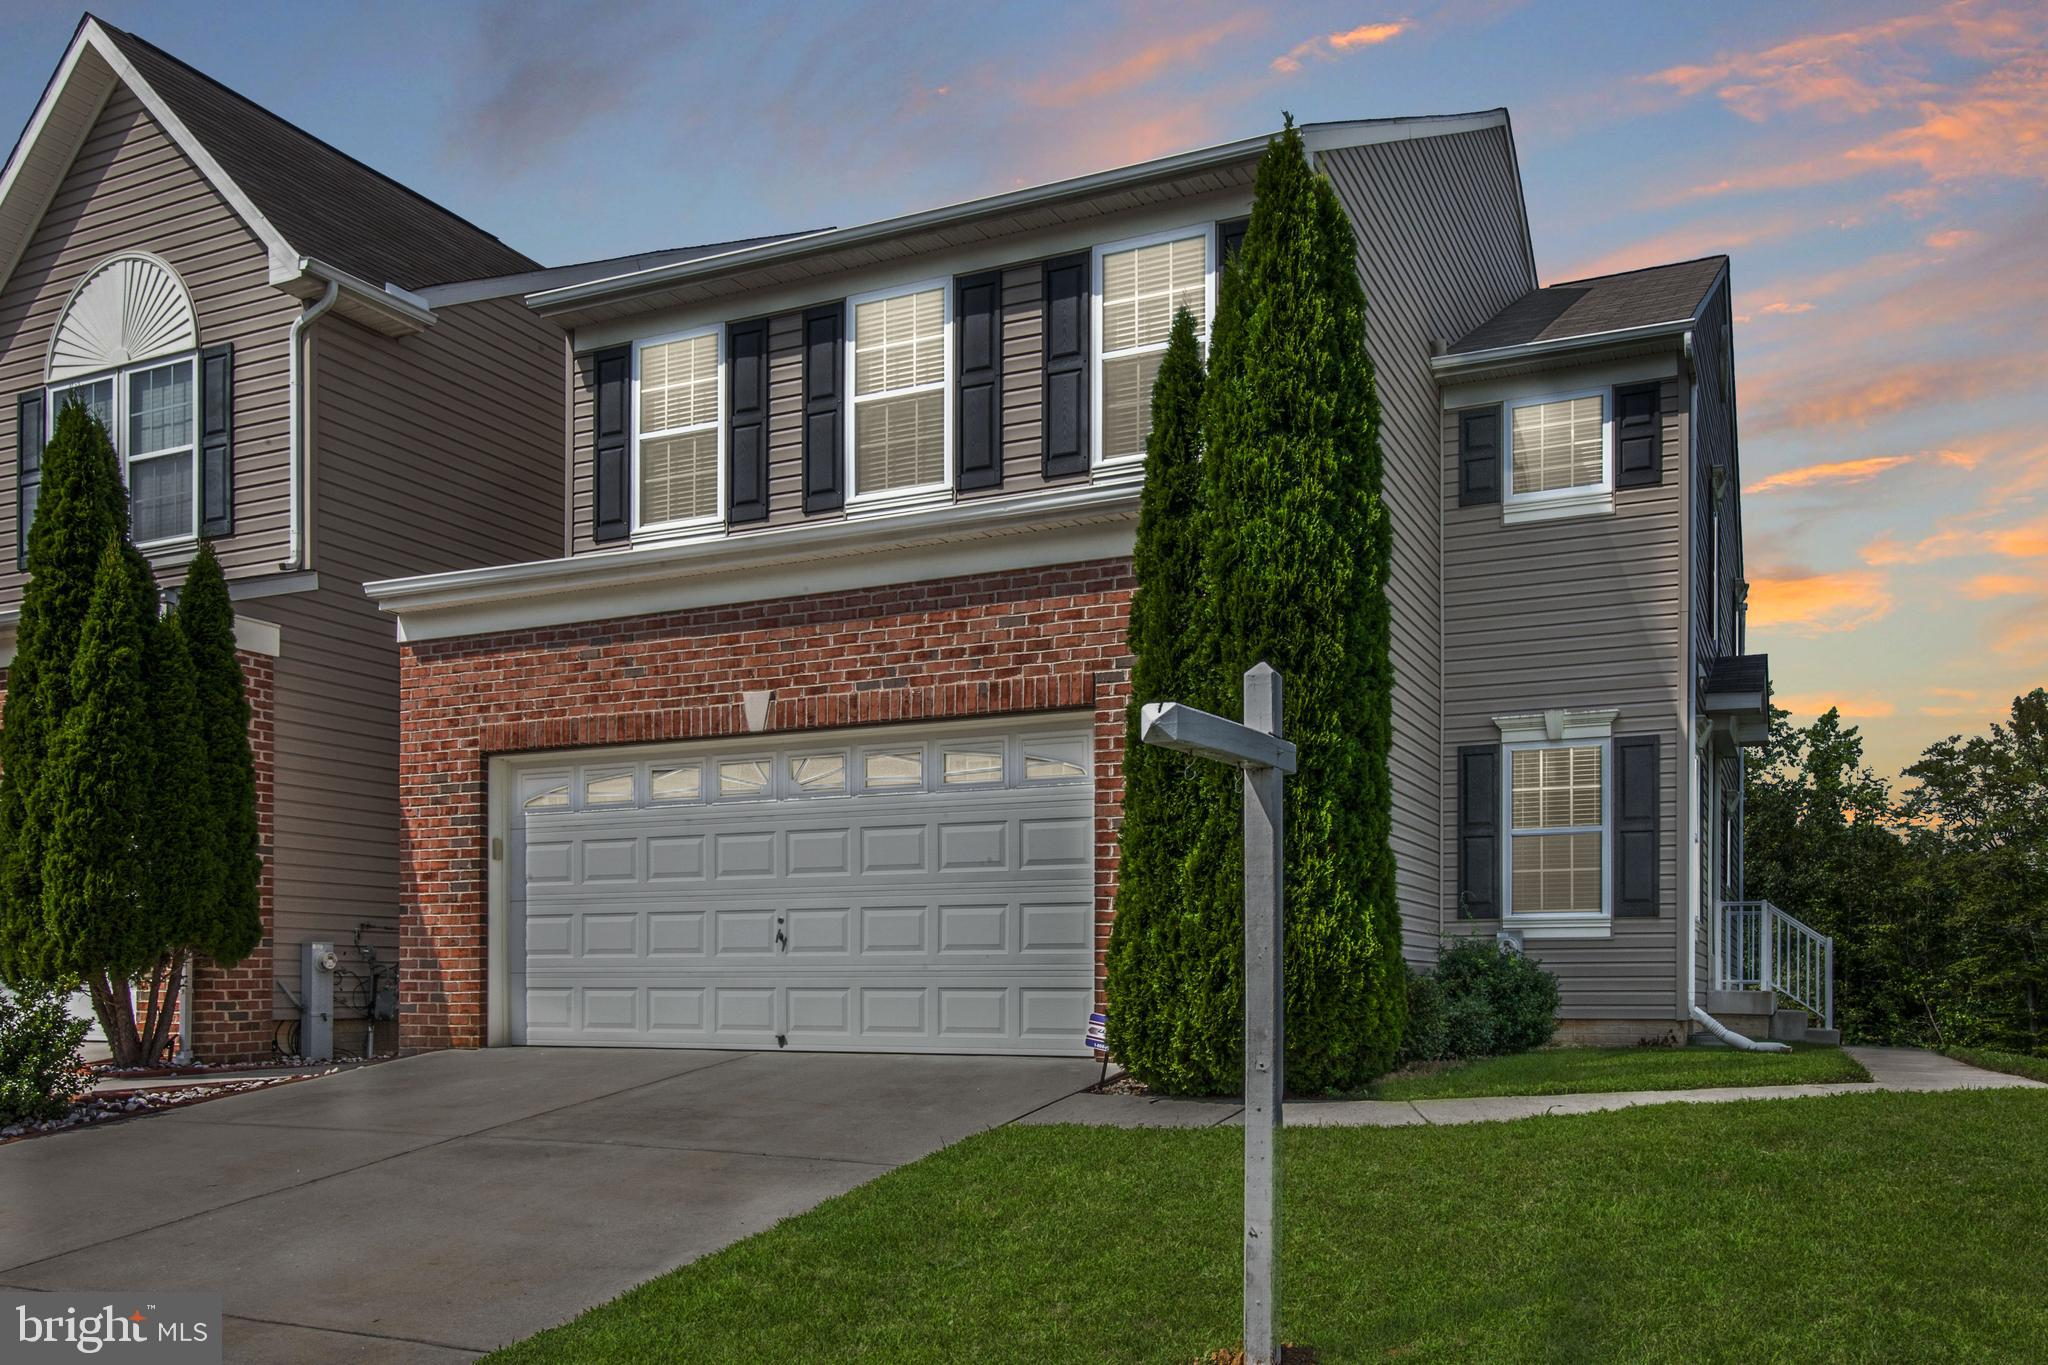 Modern, sleek and move in ready! This is a true 4 bedroom with a possible 5th bedroom in basement. M